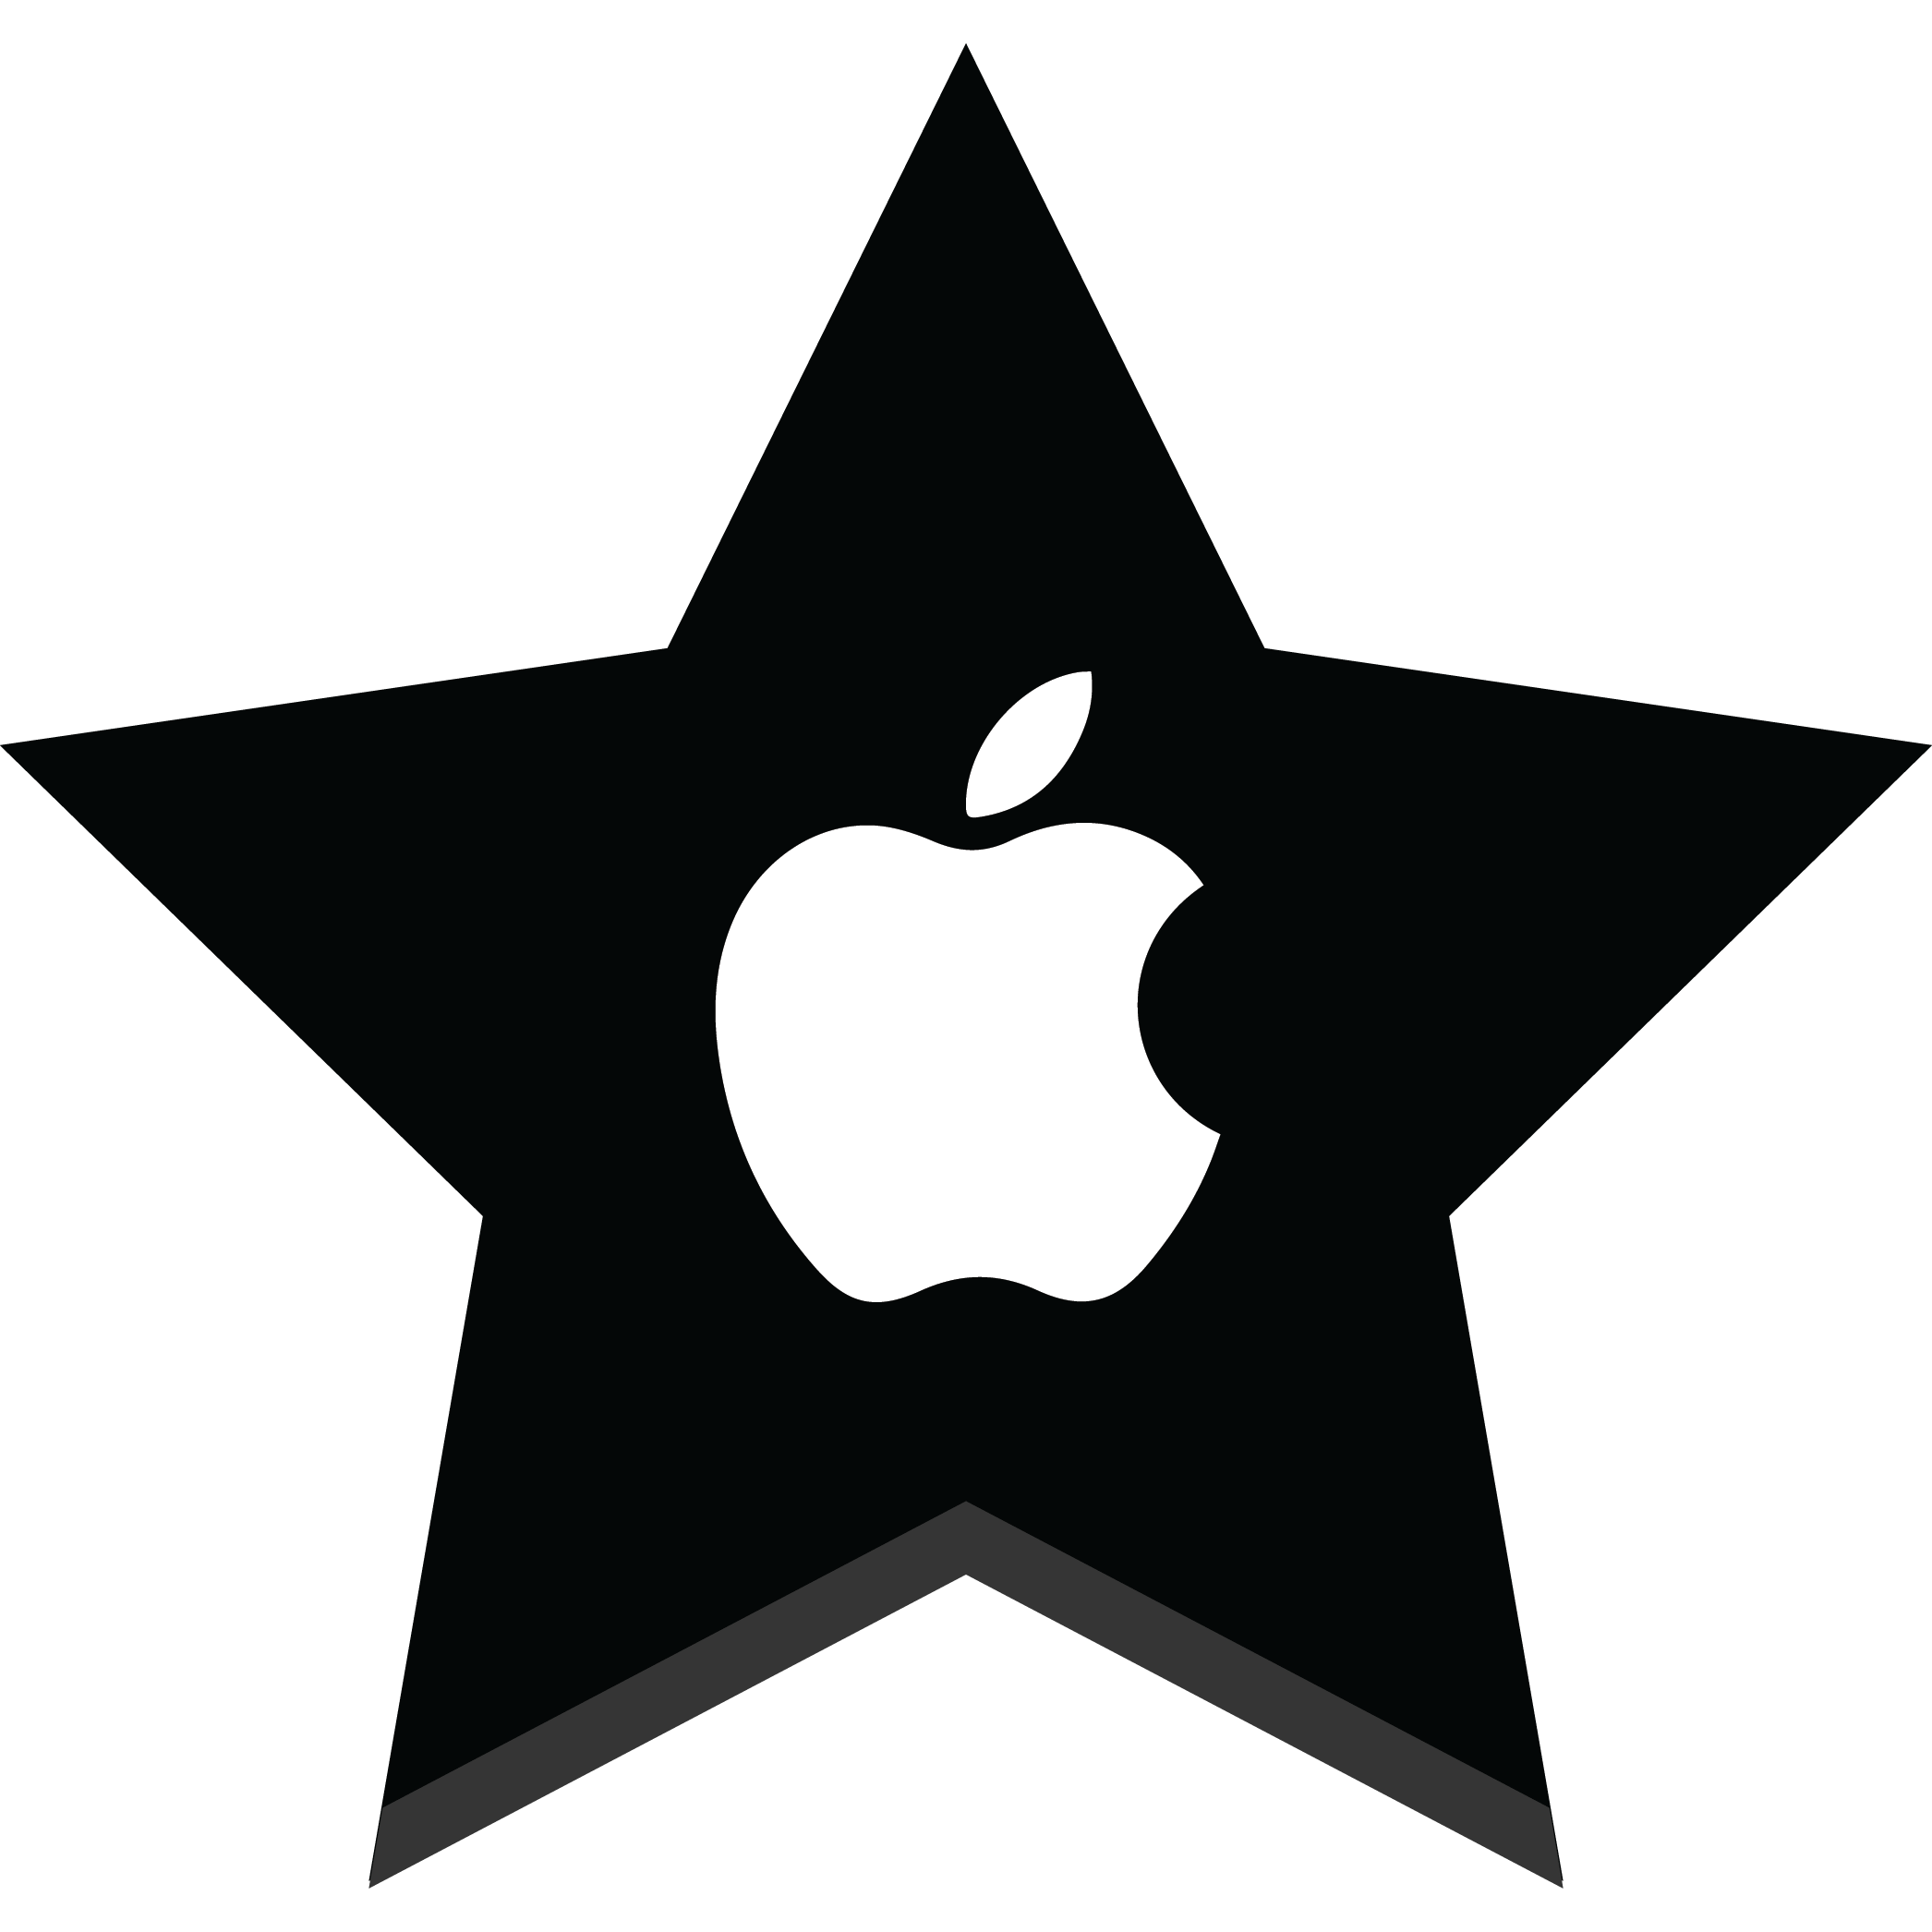 apple, communication, ipad, screen, socal, tablet icon